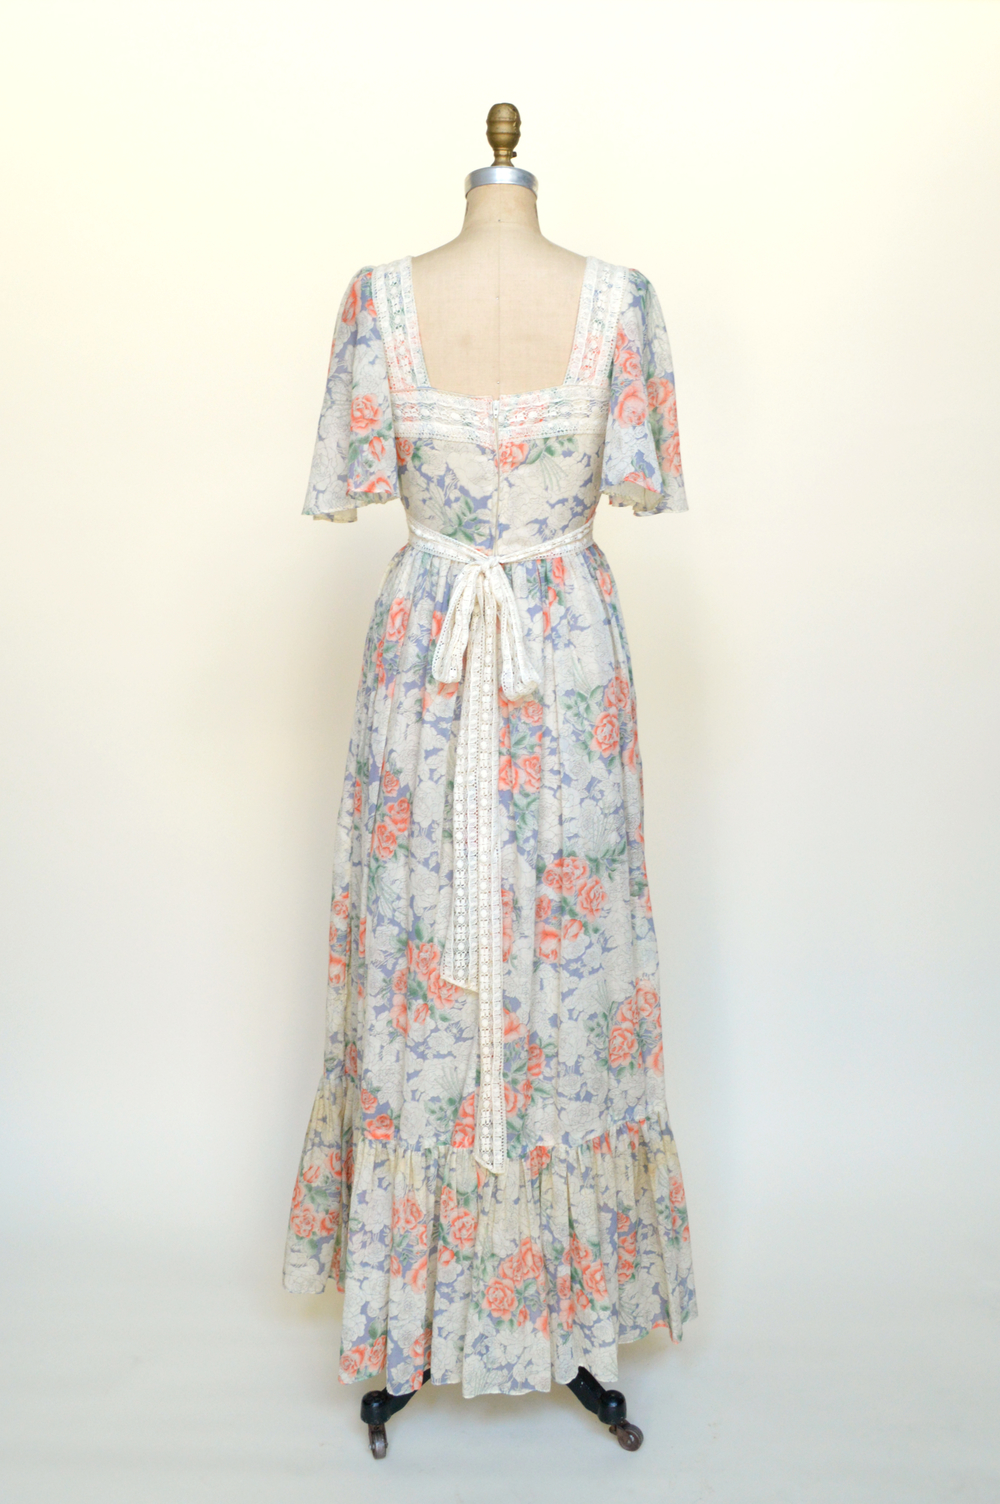 Vintage maxi dress from Dalena Vintage.